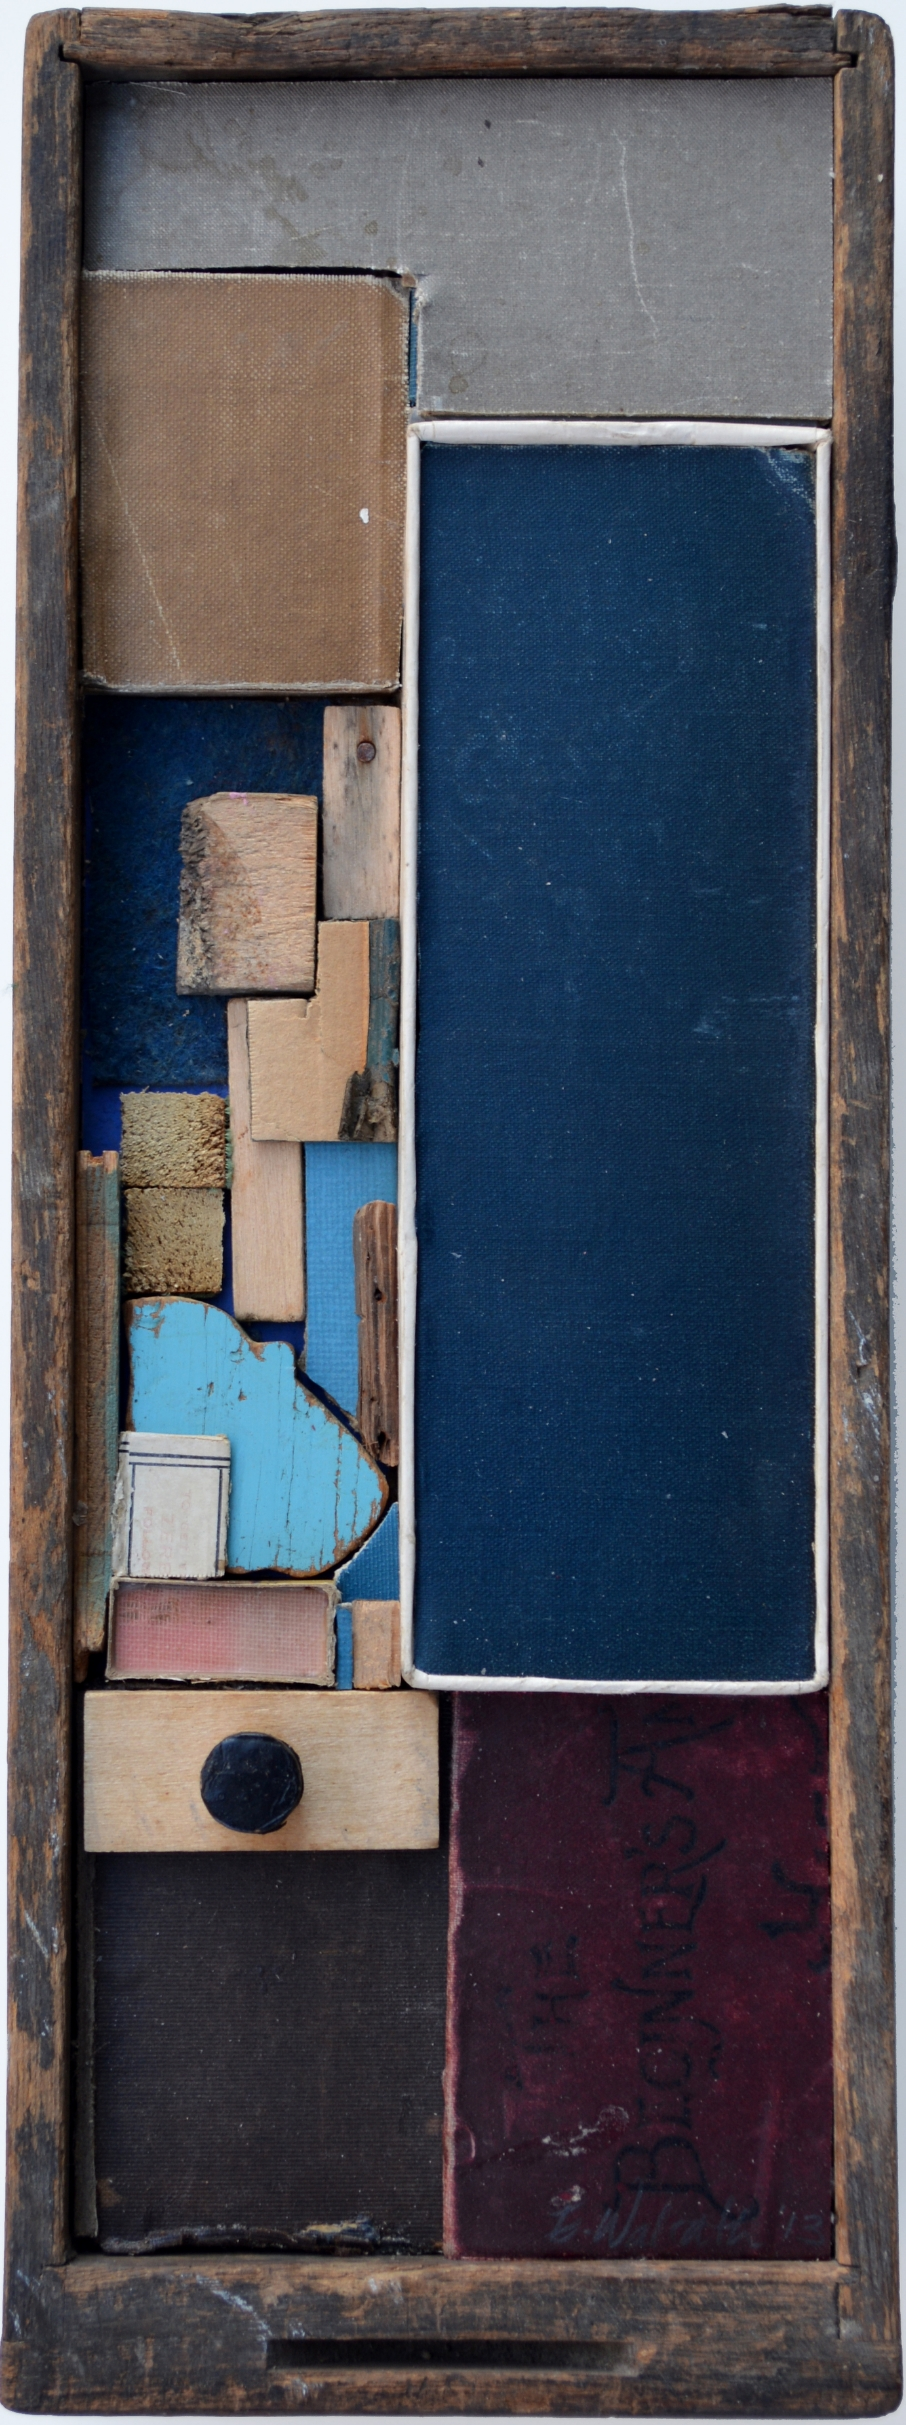 Blue Arrangement 2013, mixed media, 13X5X4 inches.jpg